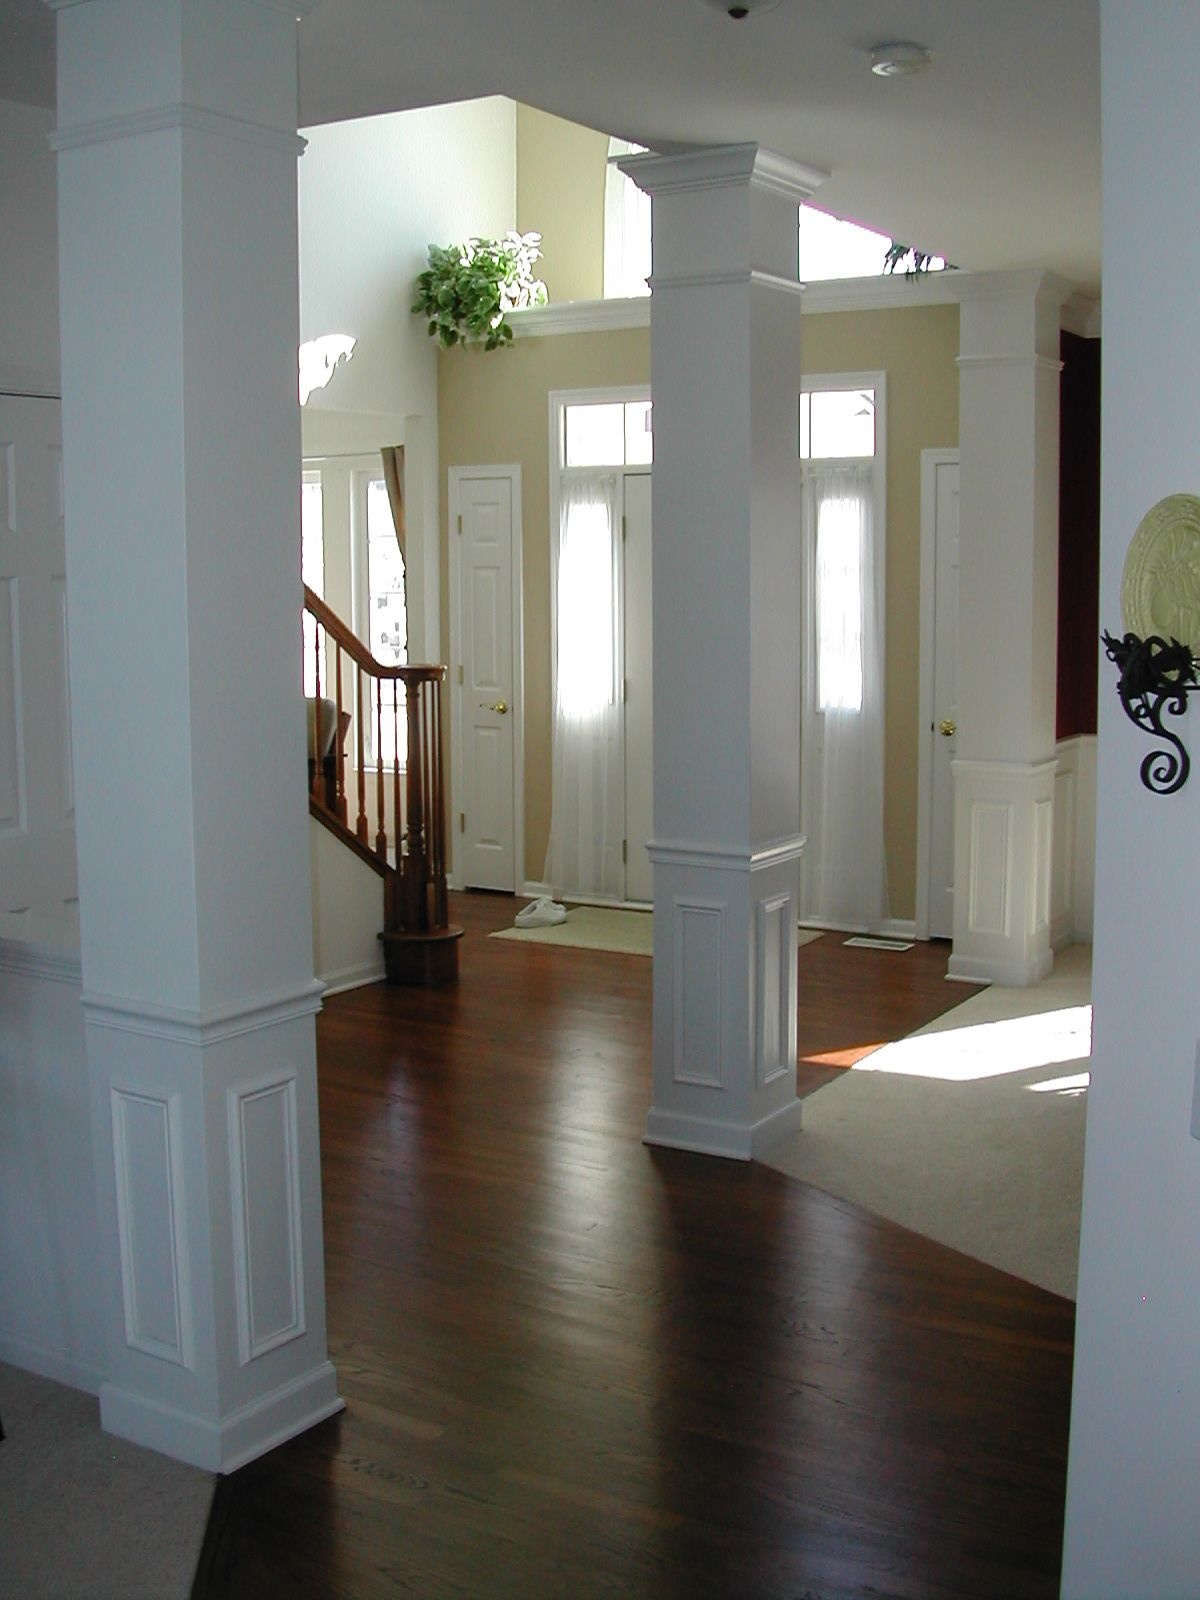 Kitchens With Columns open kitchens with columns pictures | tips for removing a wall to